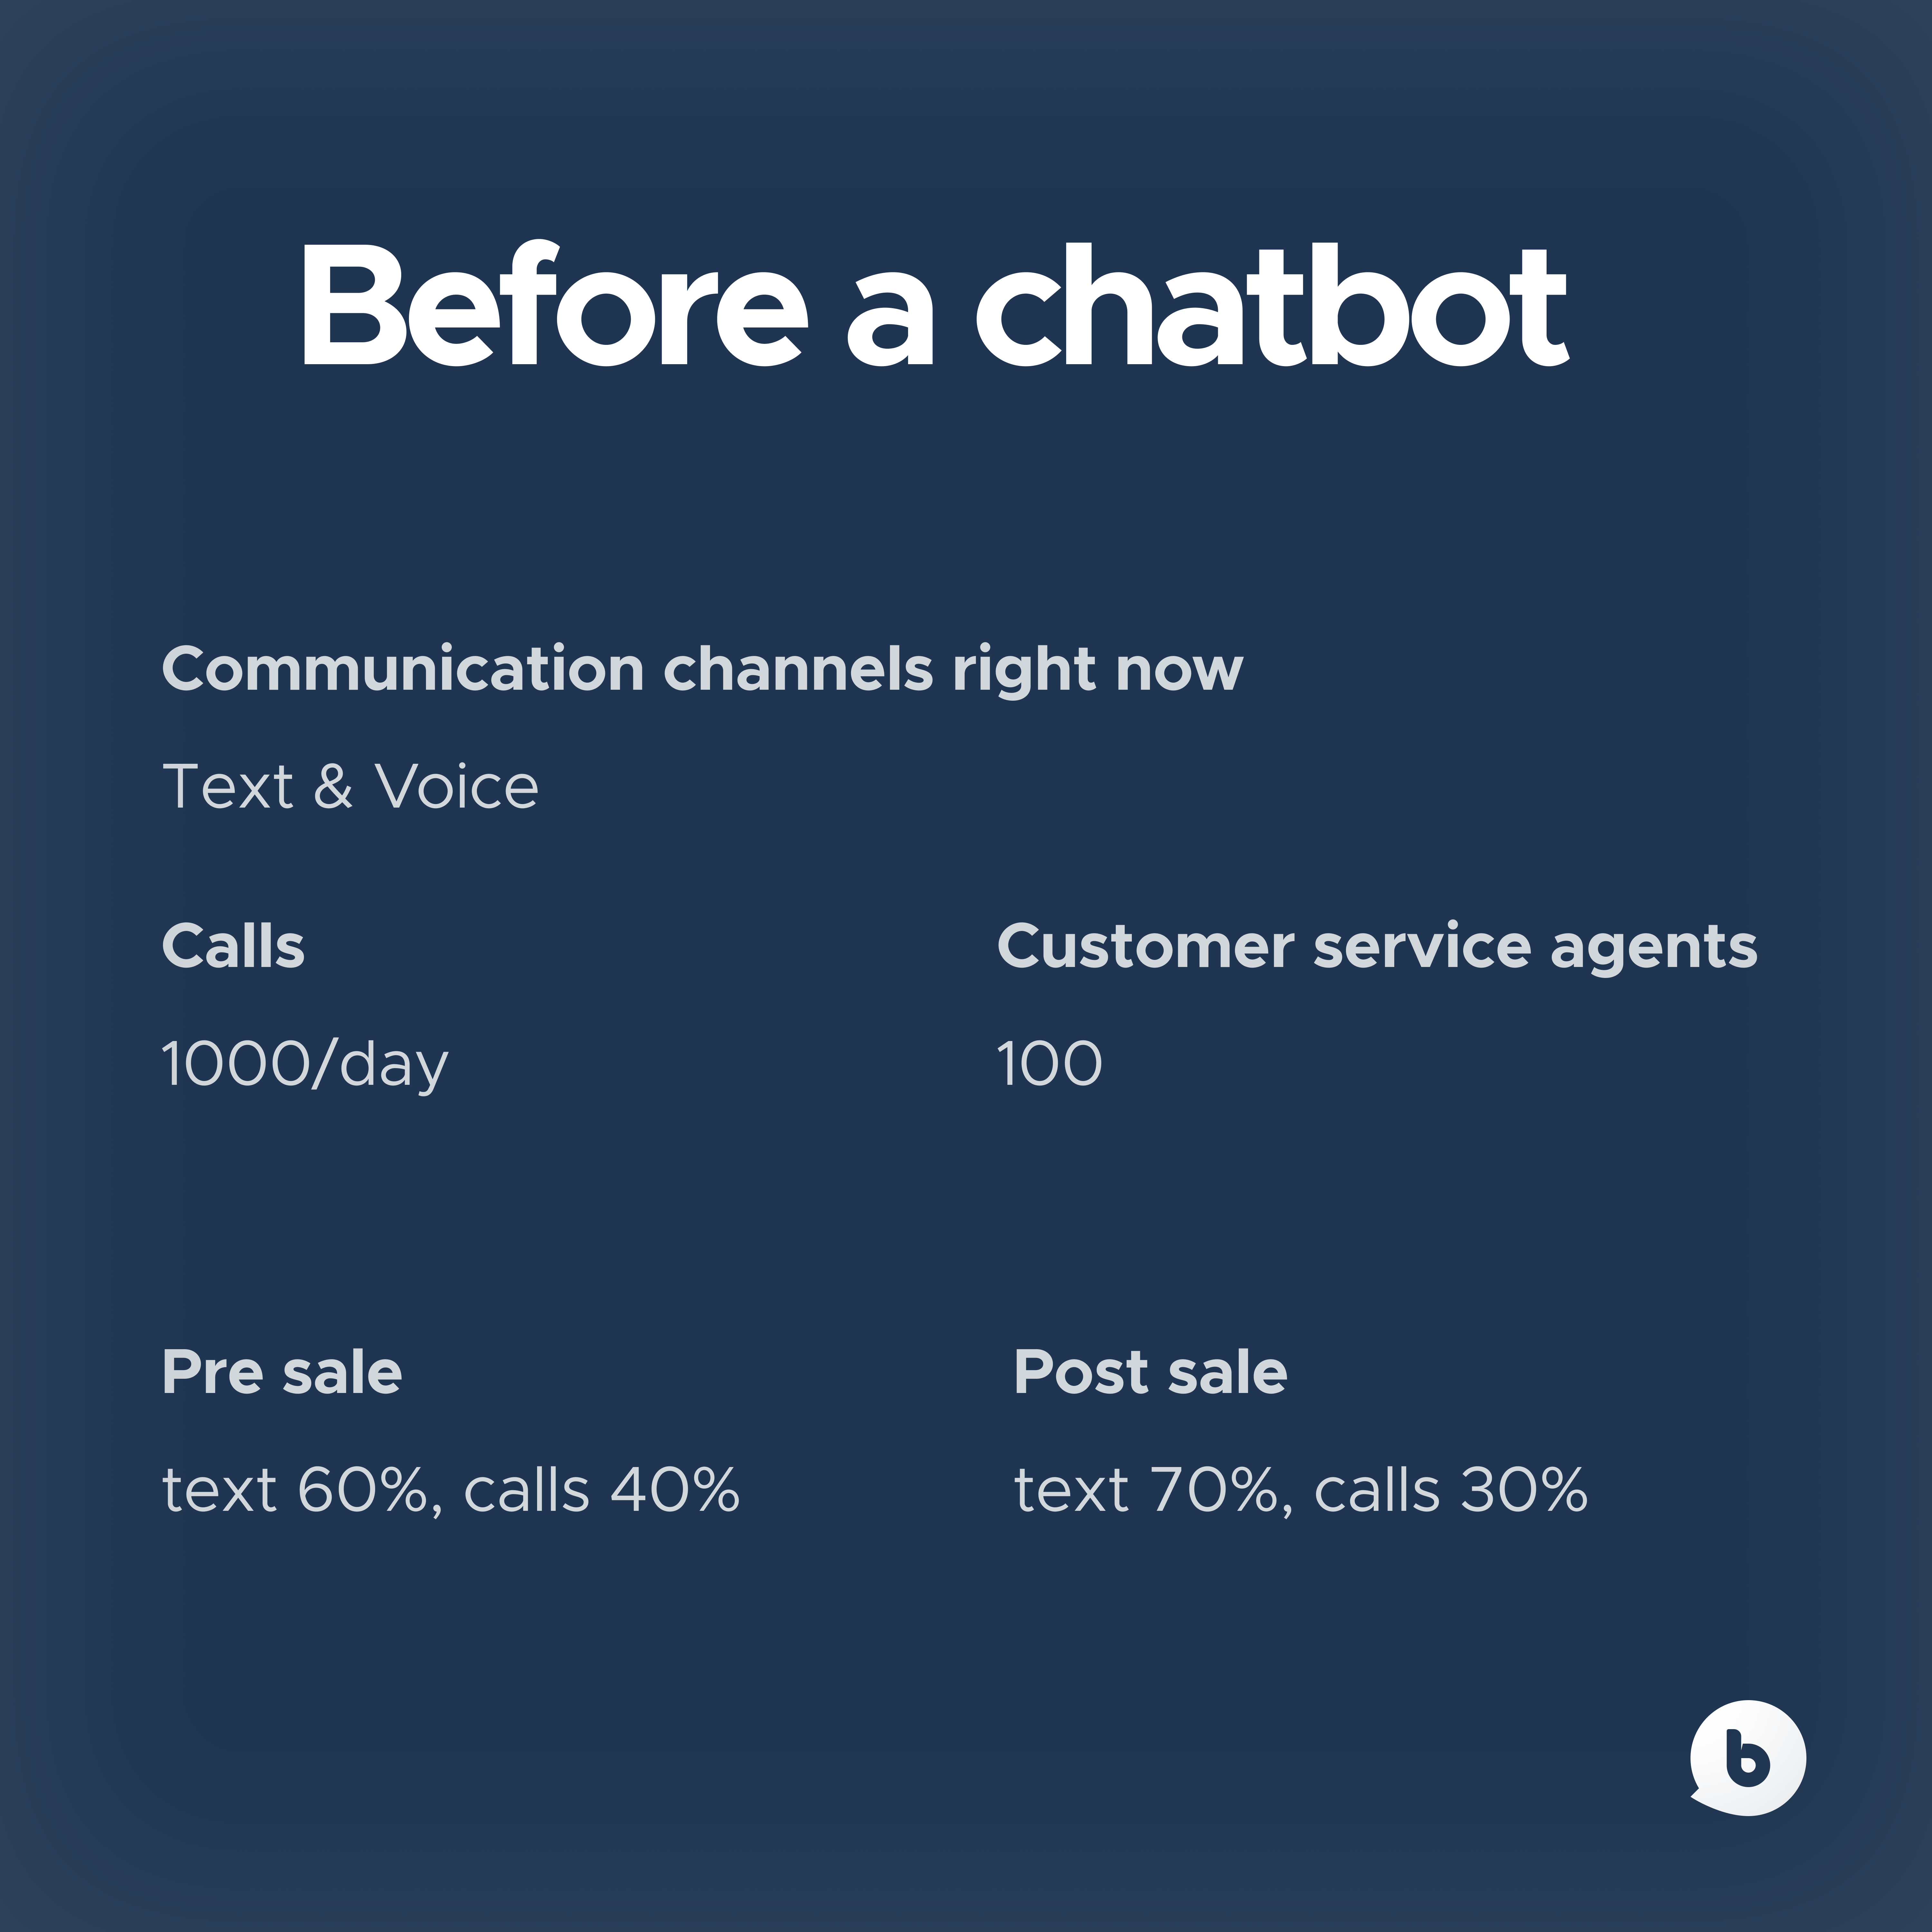 GGM Gastro results before chatbots